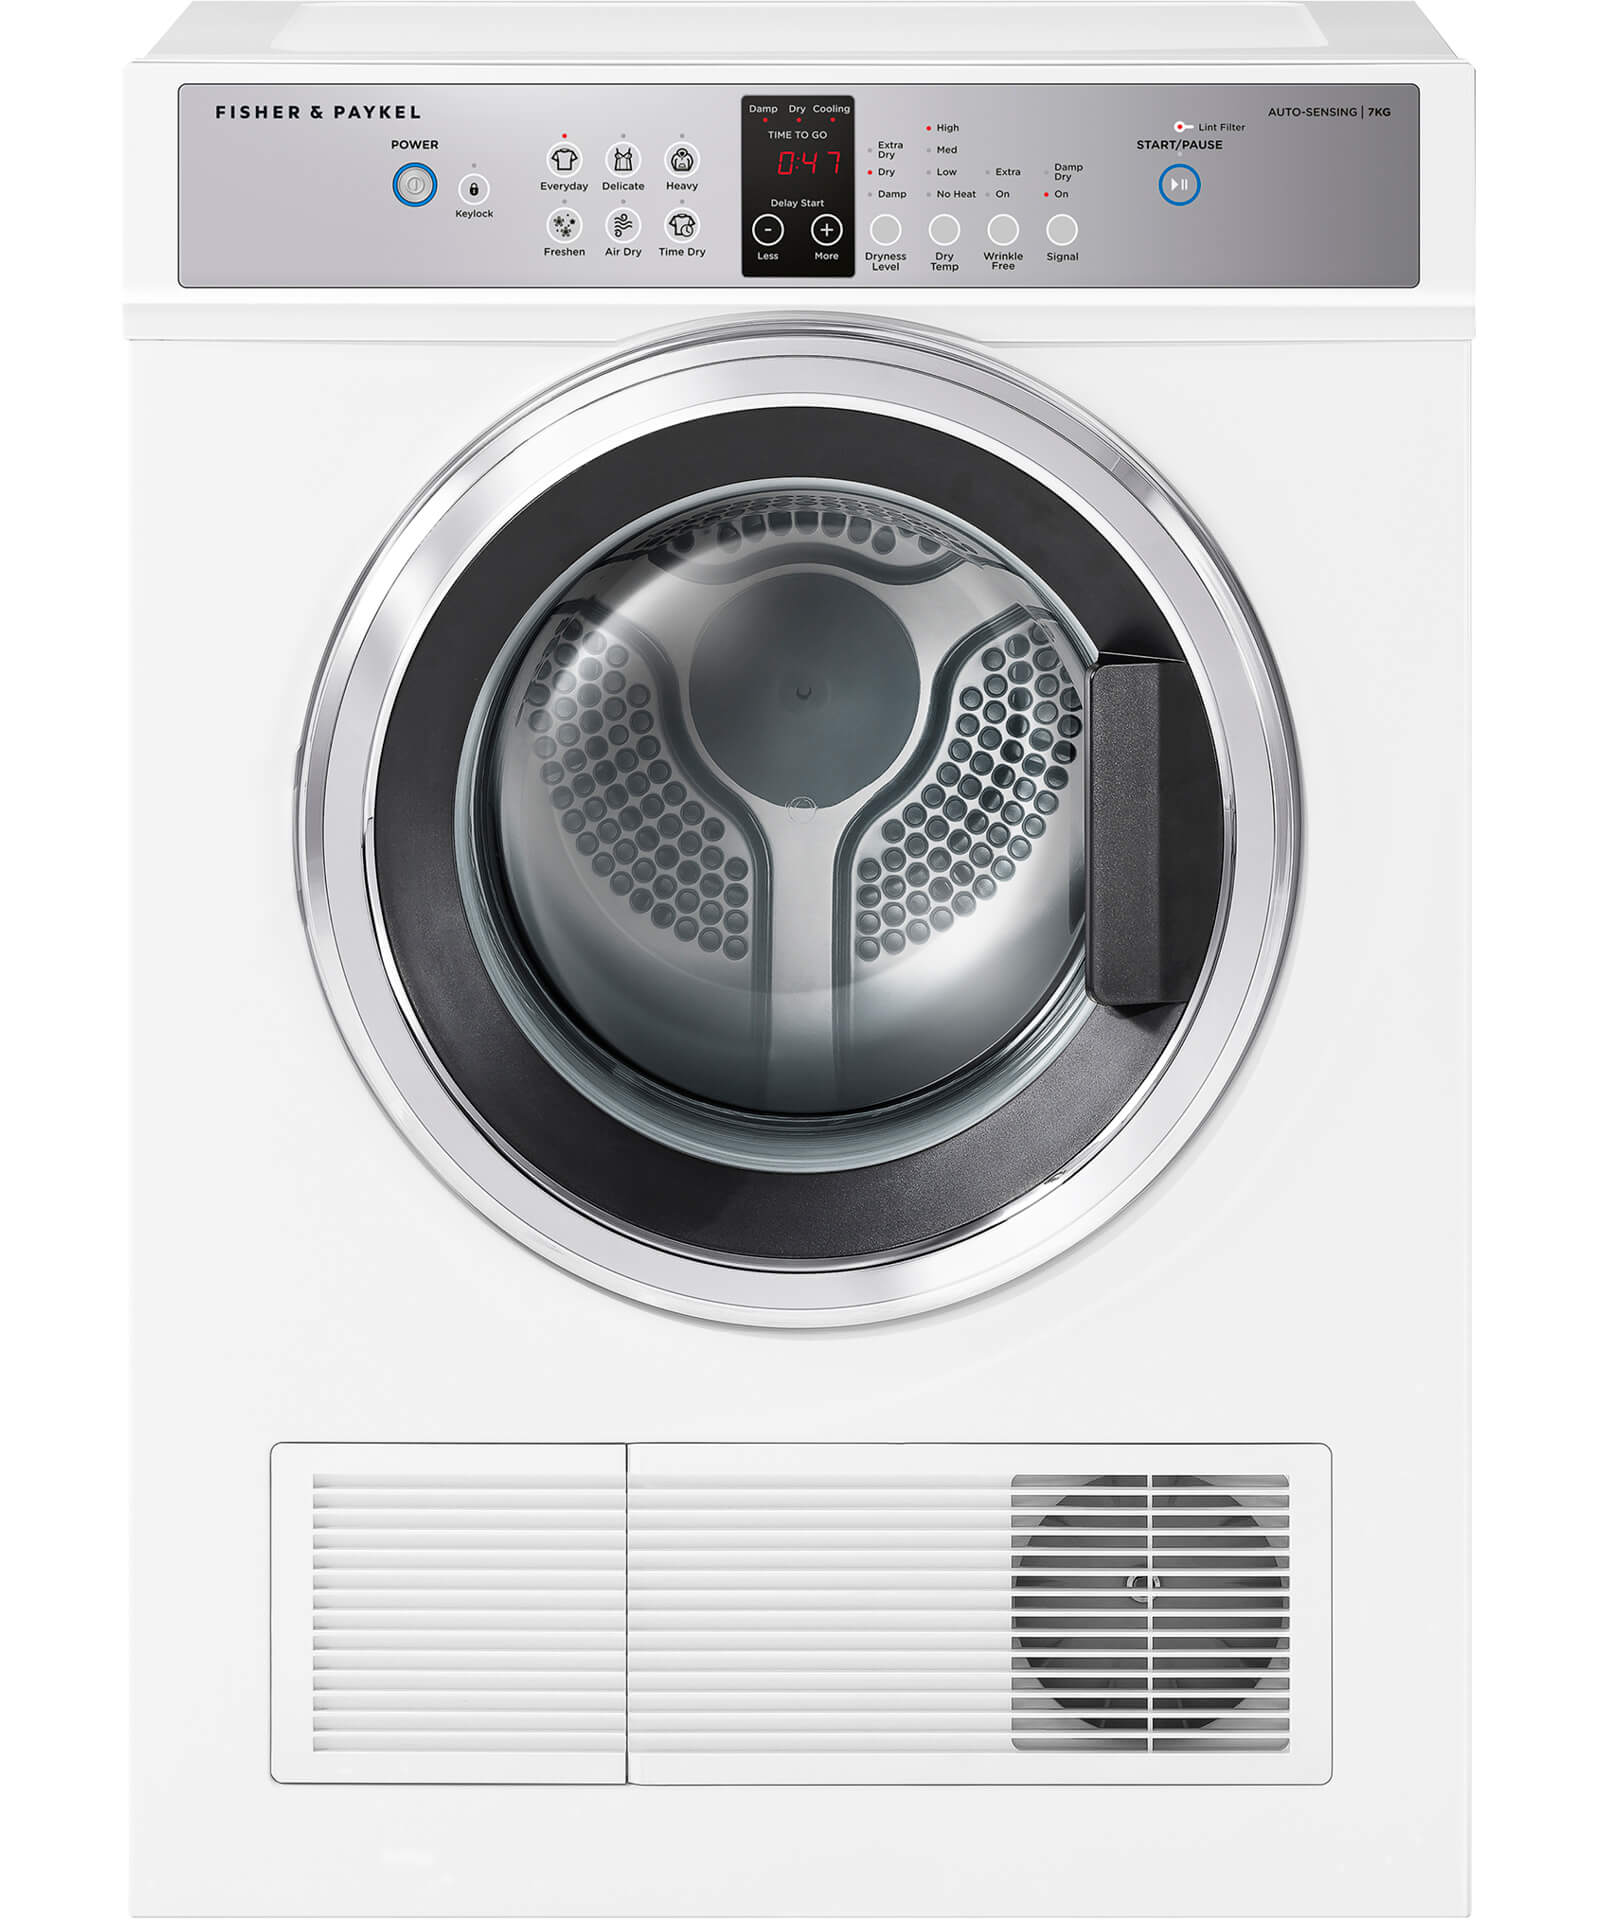 hight resolution of de7060g1 vented dryer 7kg by fisher paykel